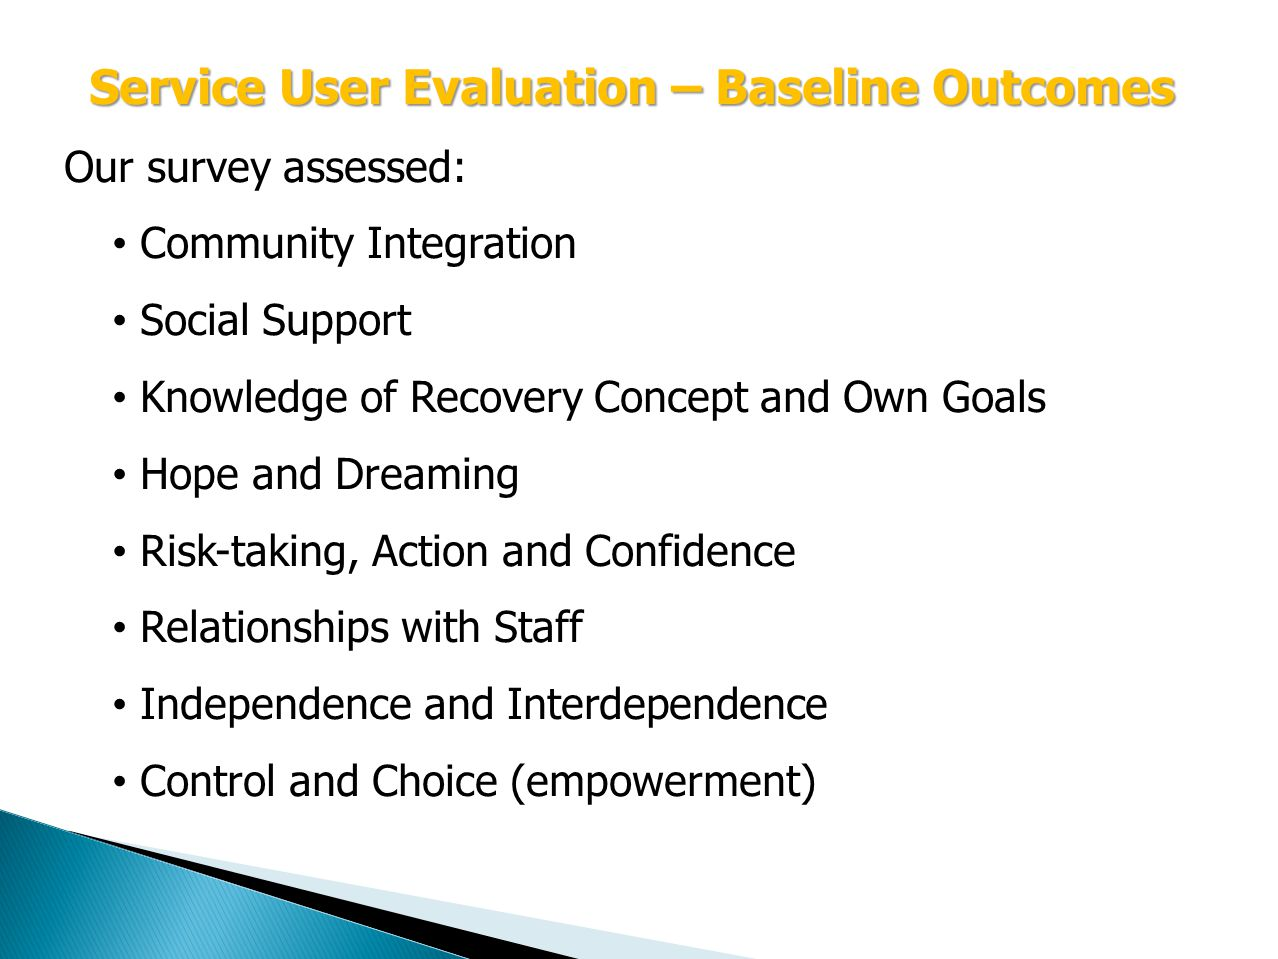 Service User Evaluation – Baseline Outcomes Our survey assessed: Community Integration Social Support Knowledge of Recovery Concept and Own Goals Hope and Dreaming Risk-taking, Action and Confidence Relationships with Staff Independence and Interdependence Control and Choice (empowerment)